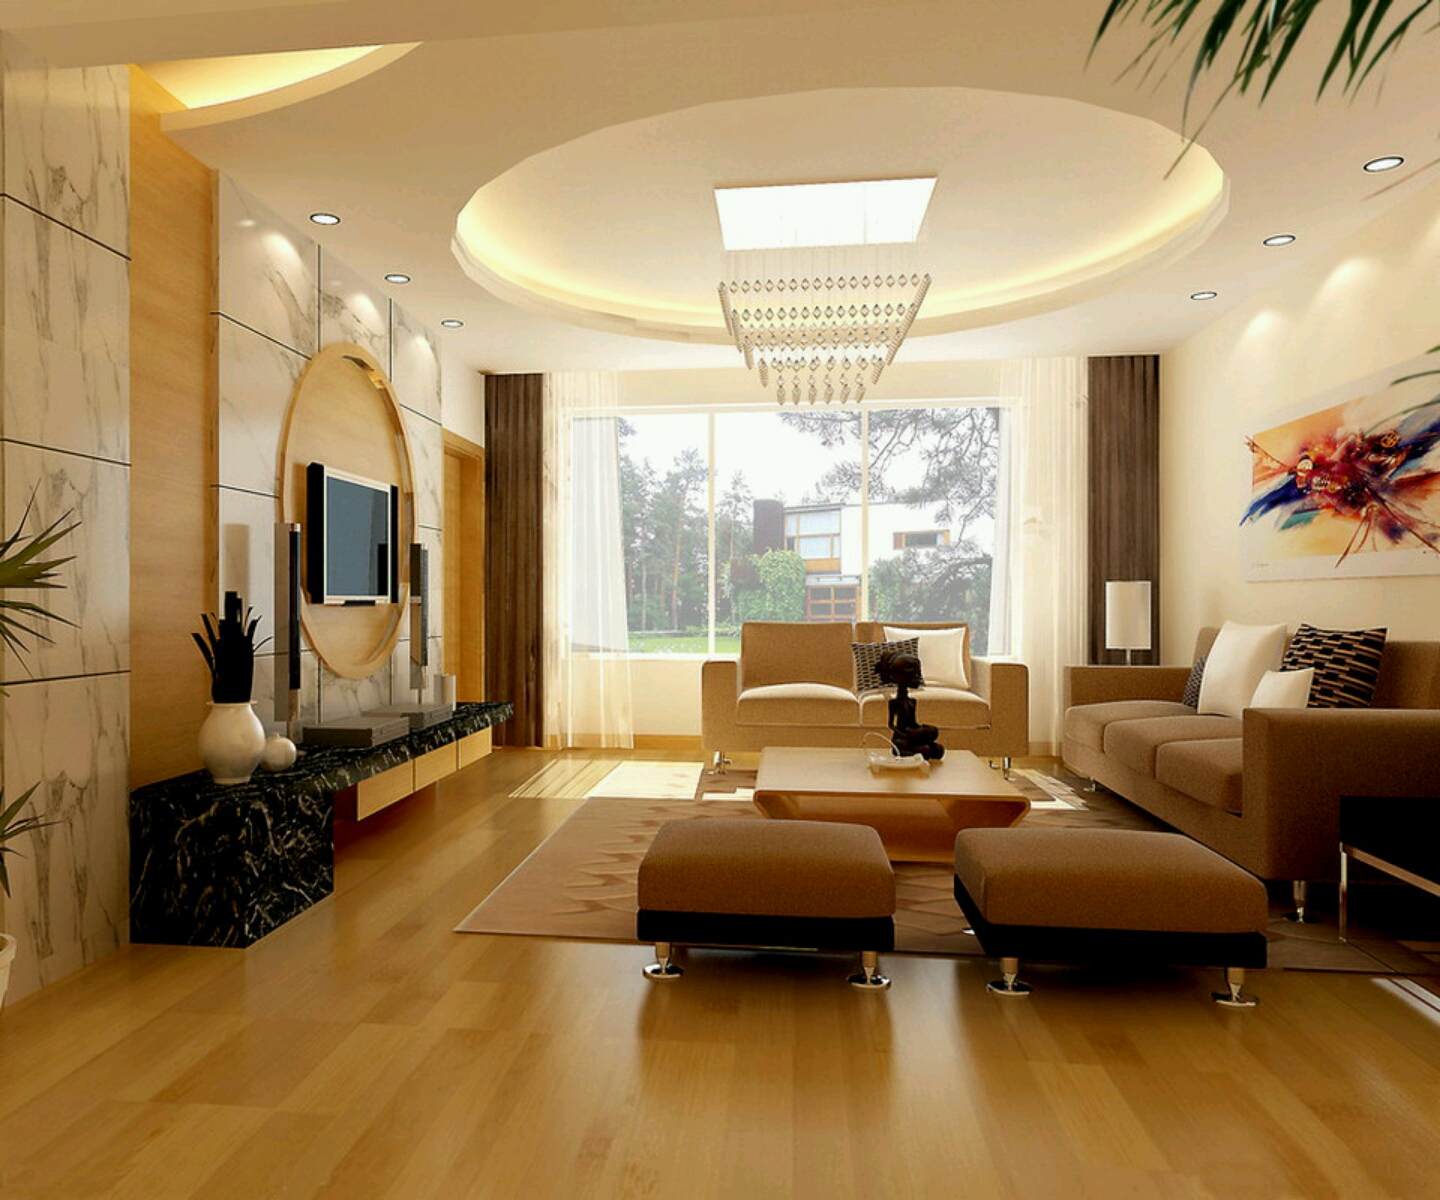 Modern interior decoration living rooms ceiling designs for Home living room design ideas